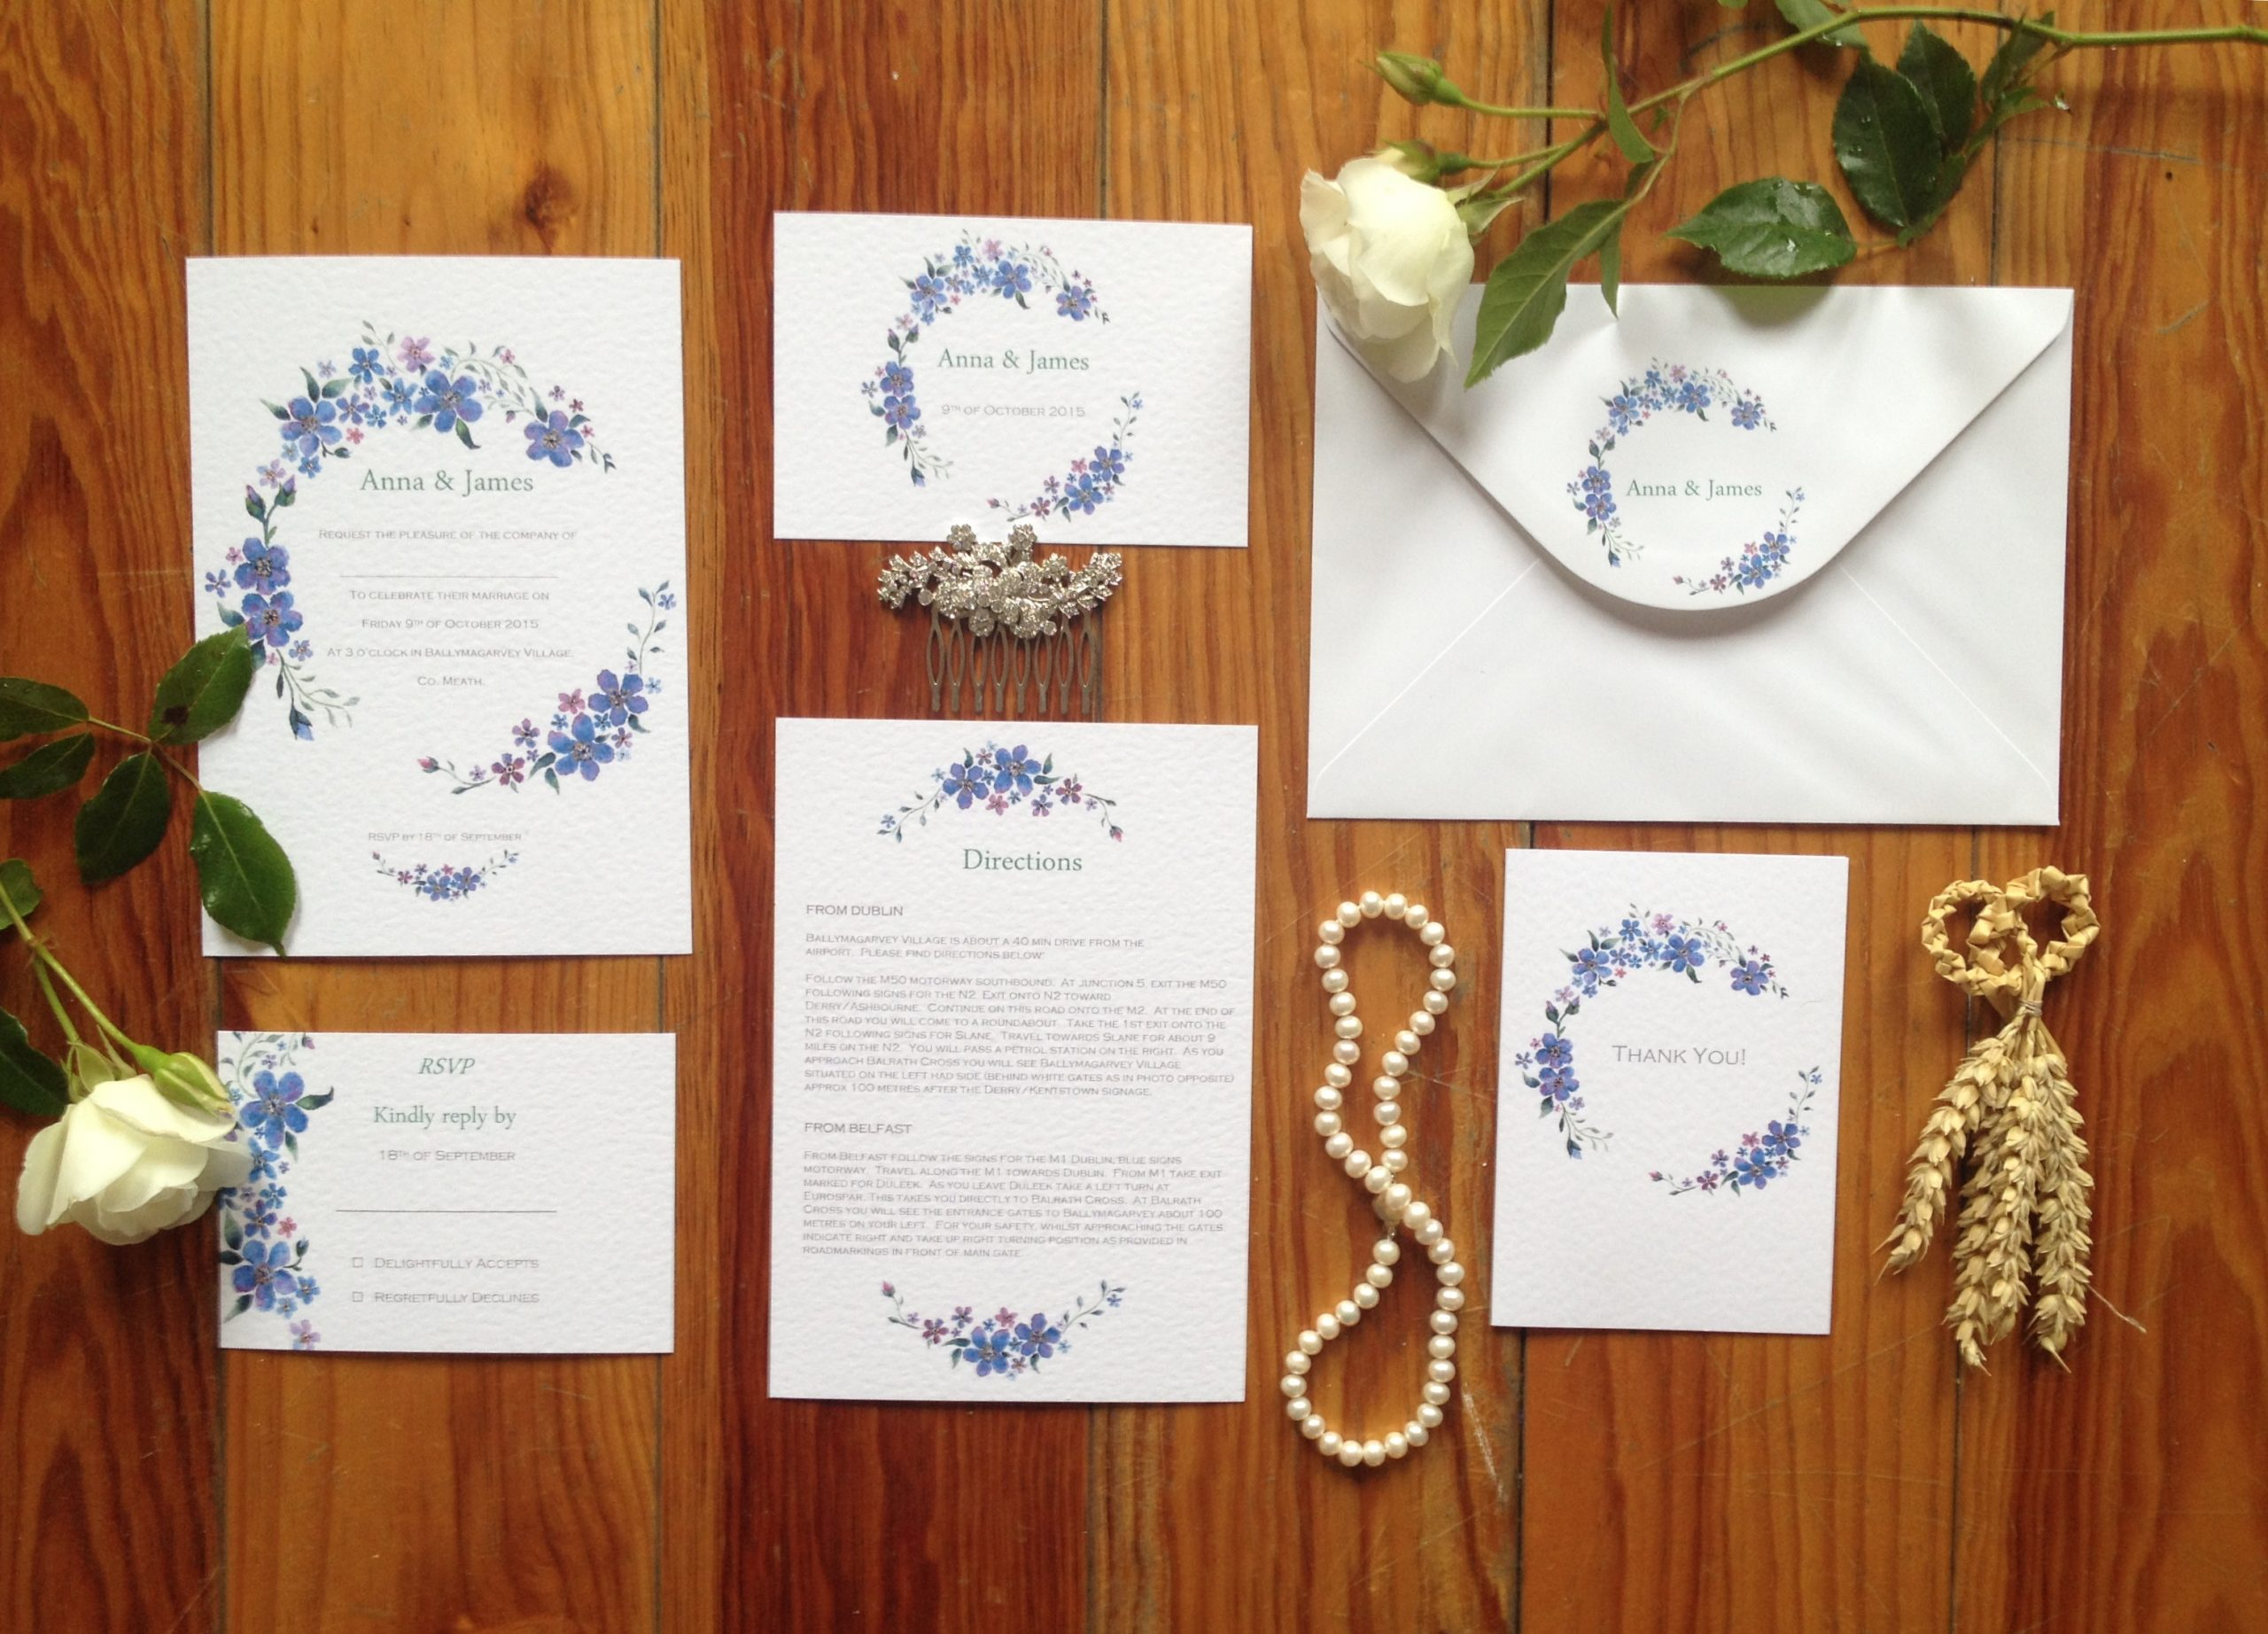 Anna and James bespoke wedding stationery pack by Gilly Cullen